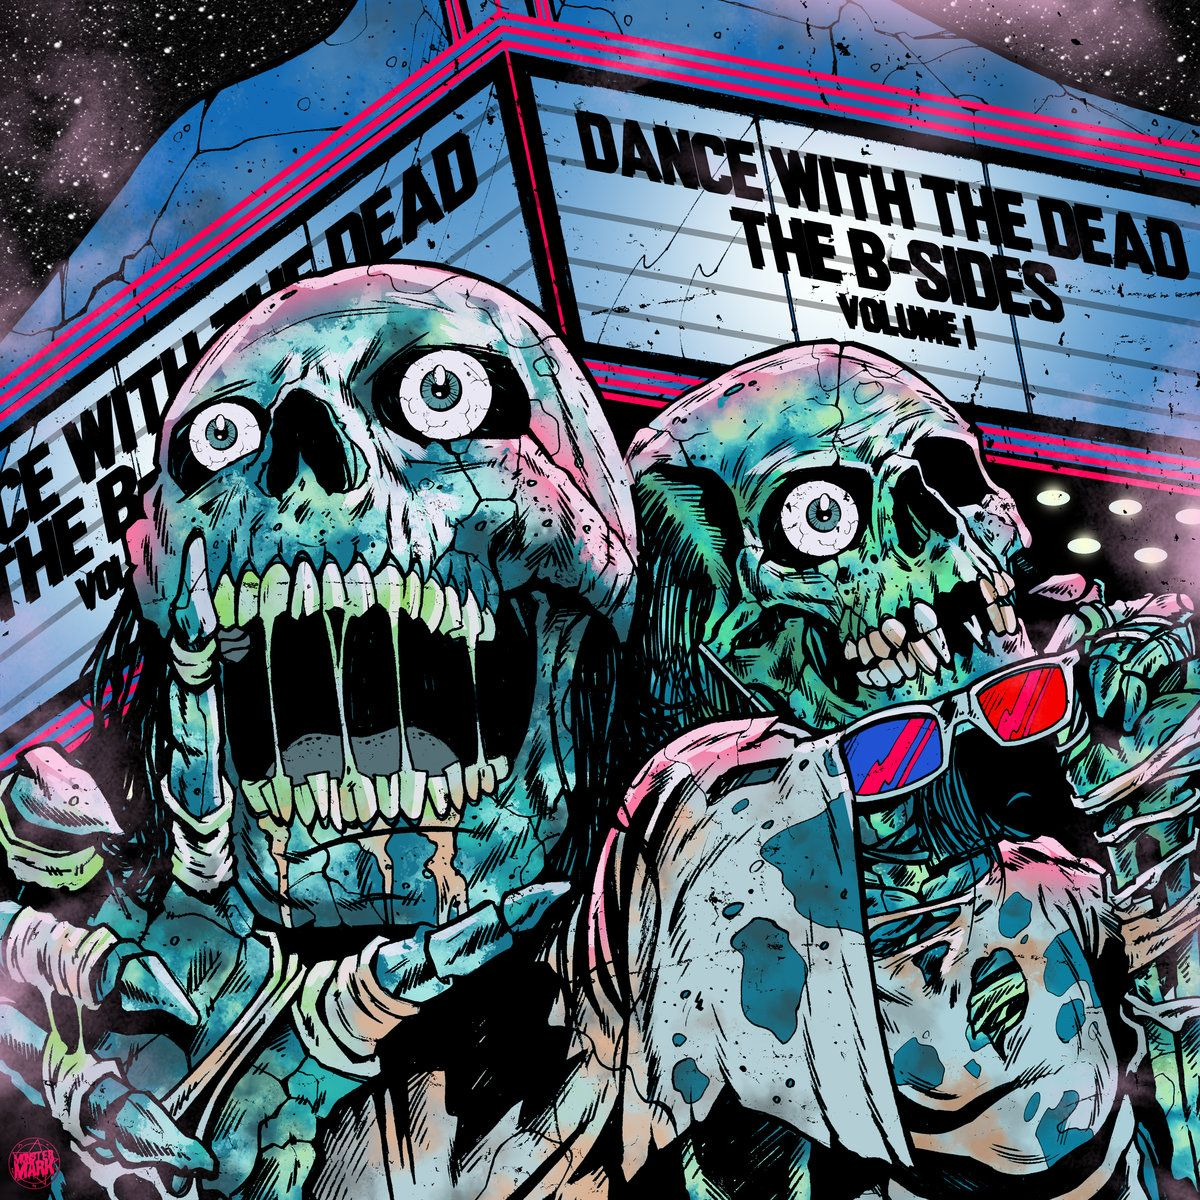 B Sides Volume 1 Dance With The Dead Retro Horror